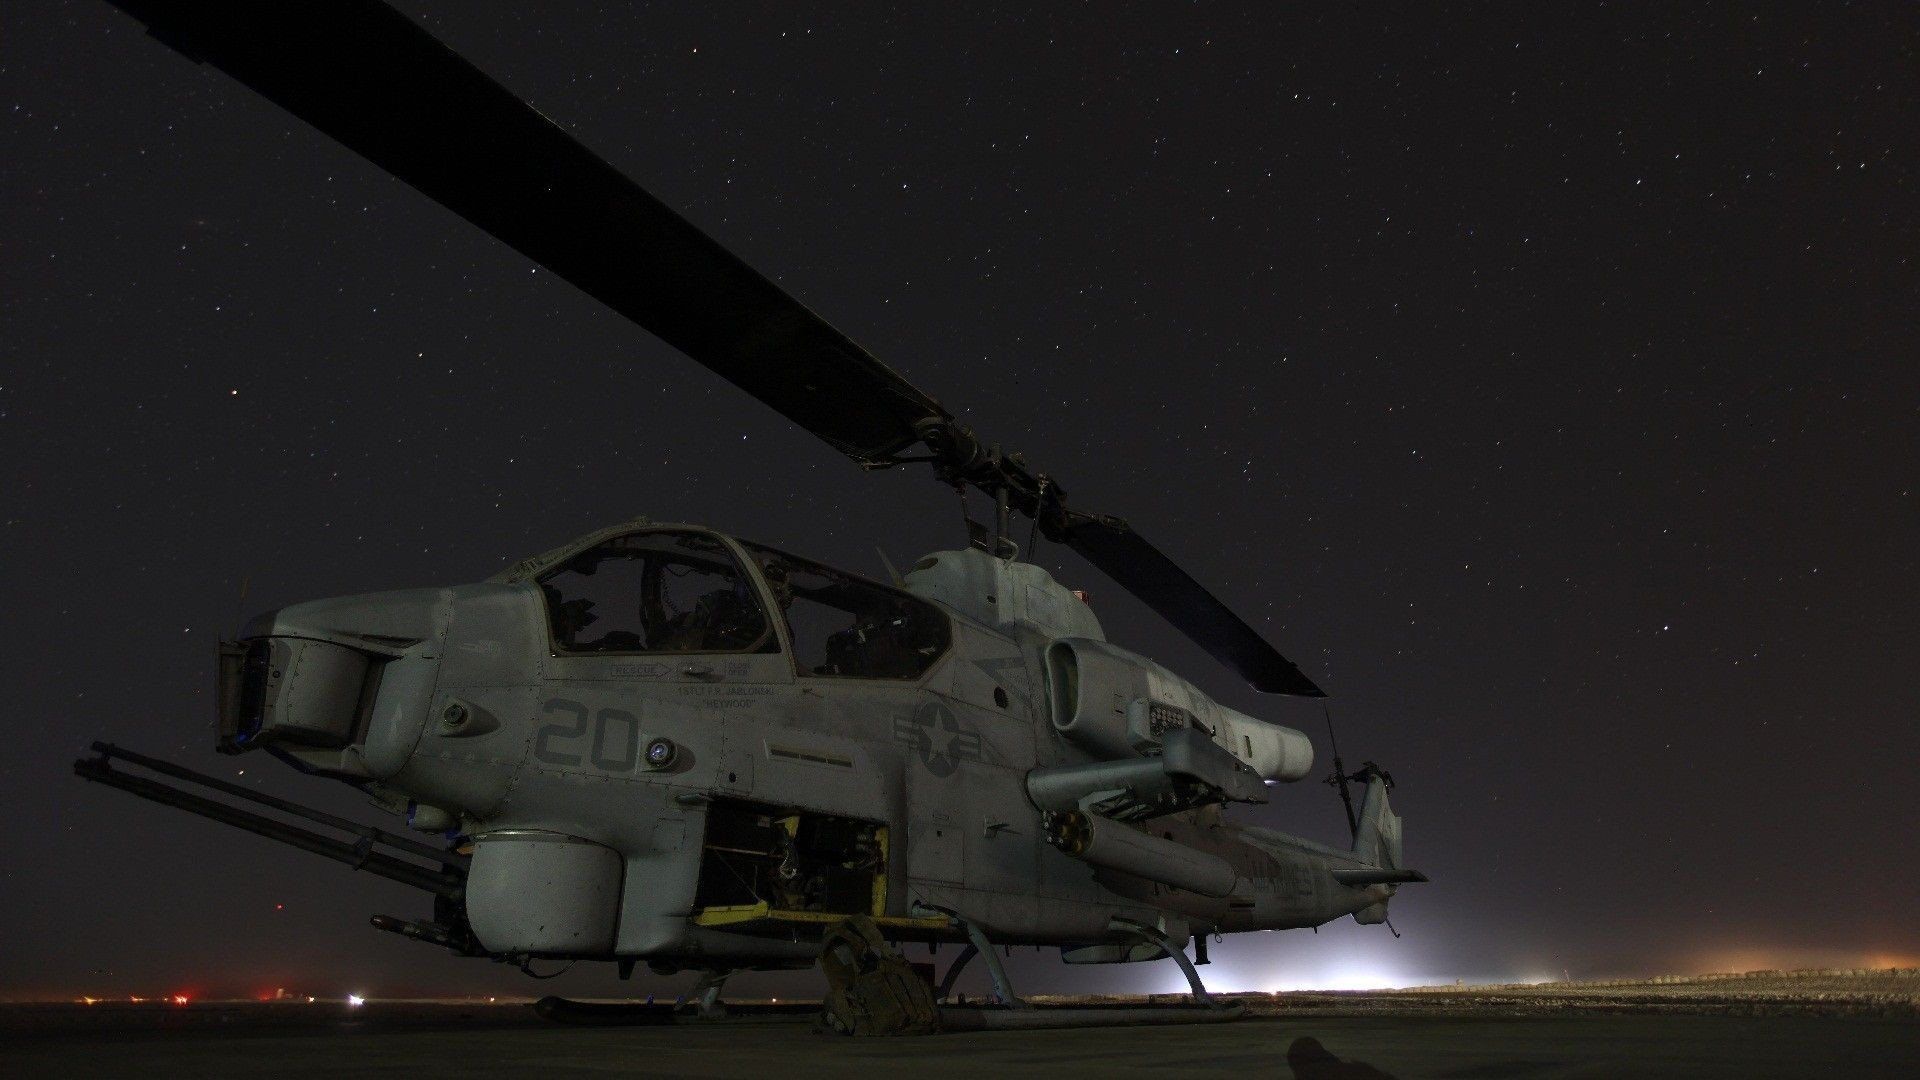 1920x1080  helicopters military aircraft military bell ah 1 supercobra usmc  wallpaper and background JPG 257 kB